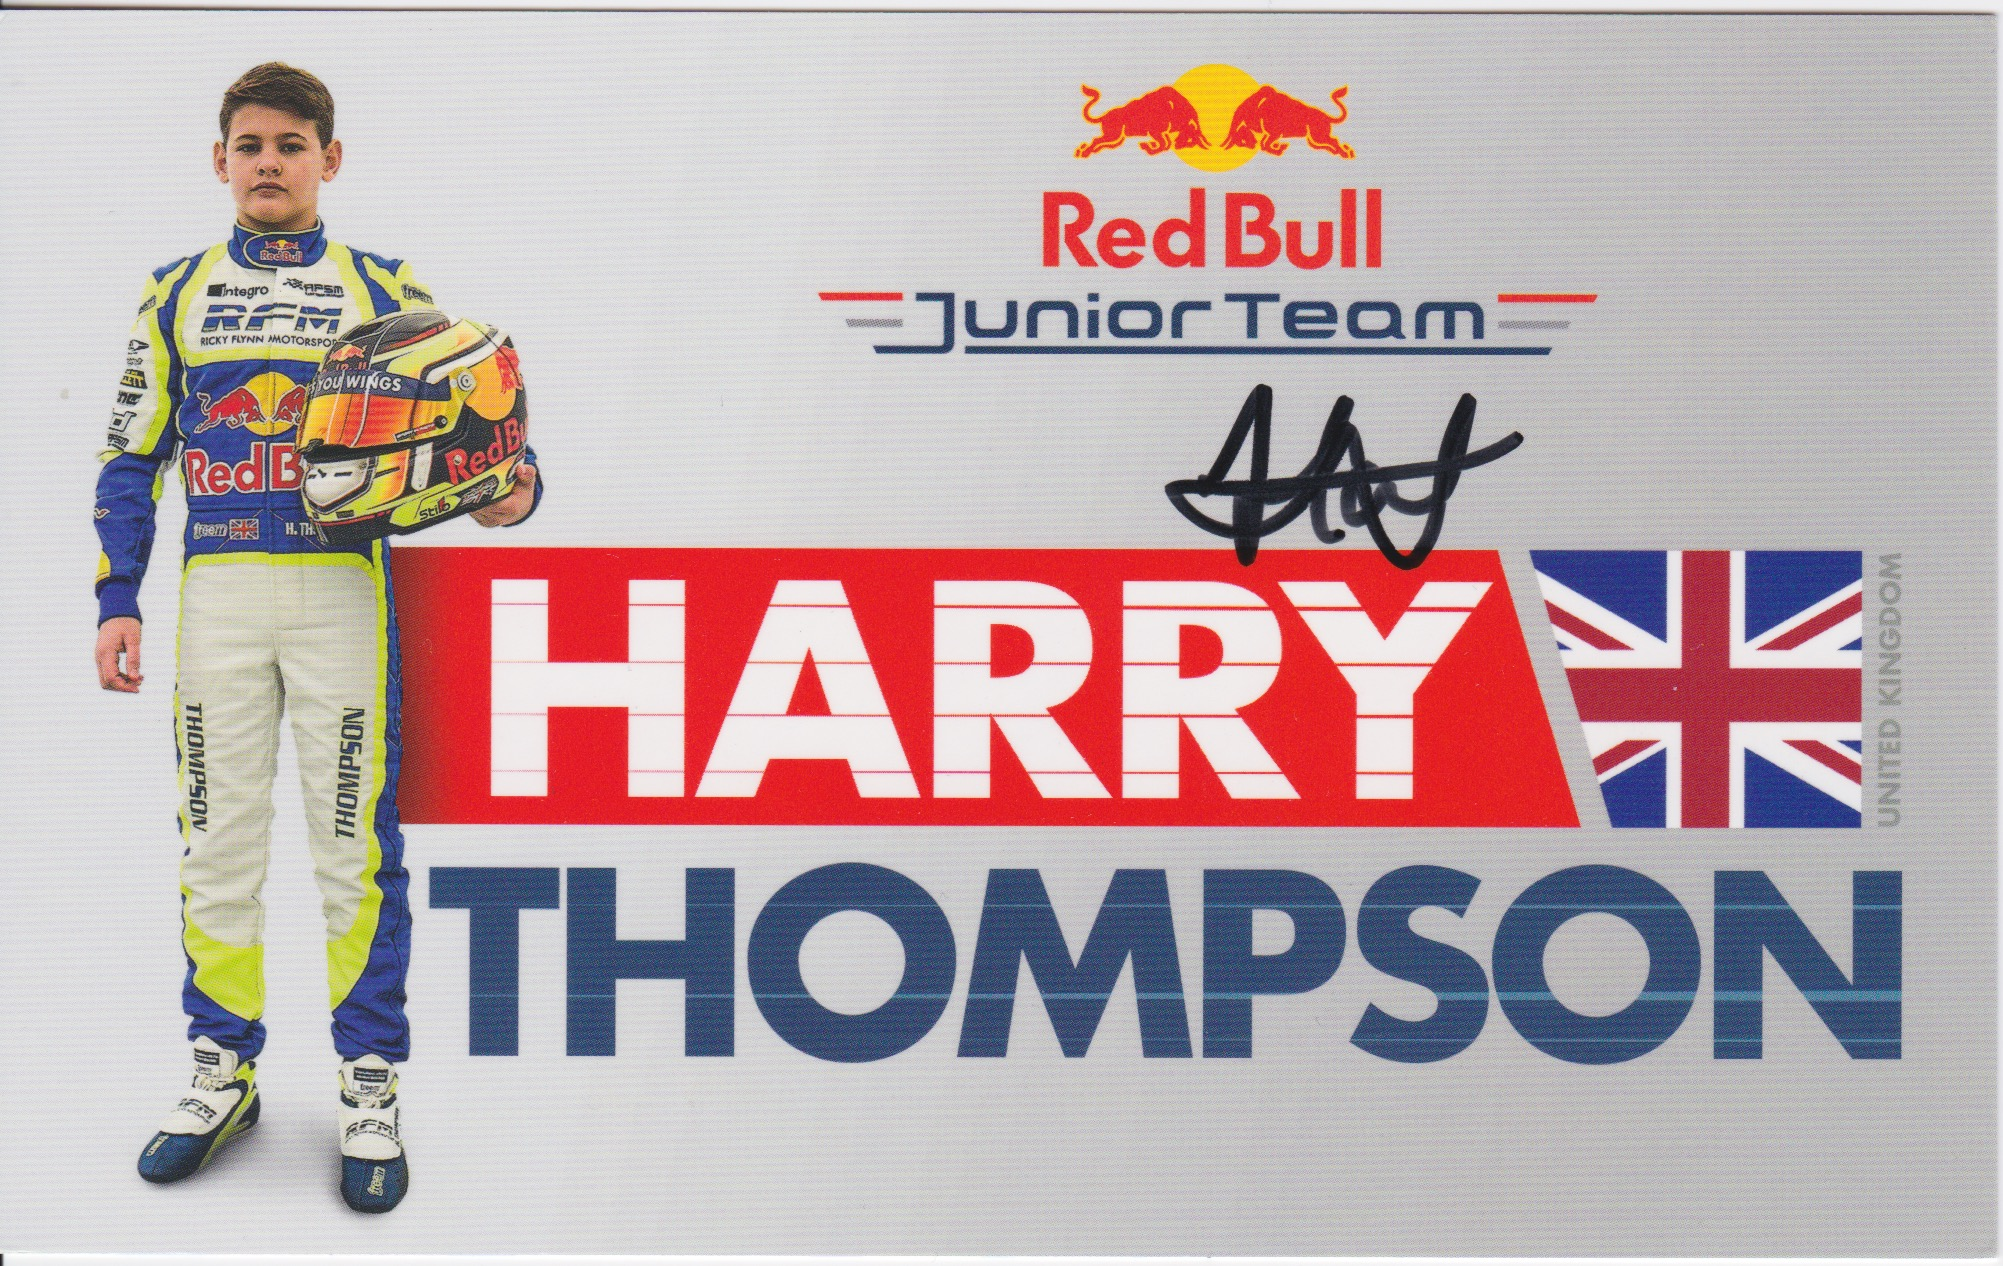 Harry Thompson Red Bull Junior Team 2019